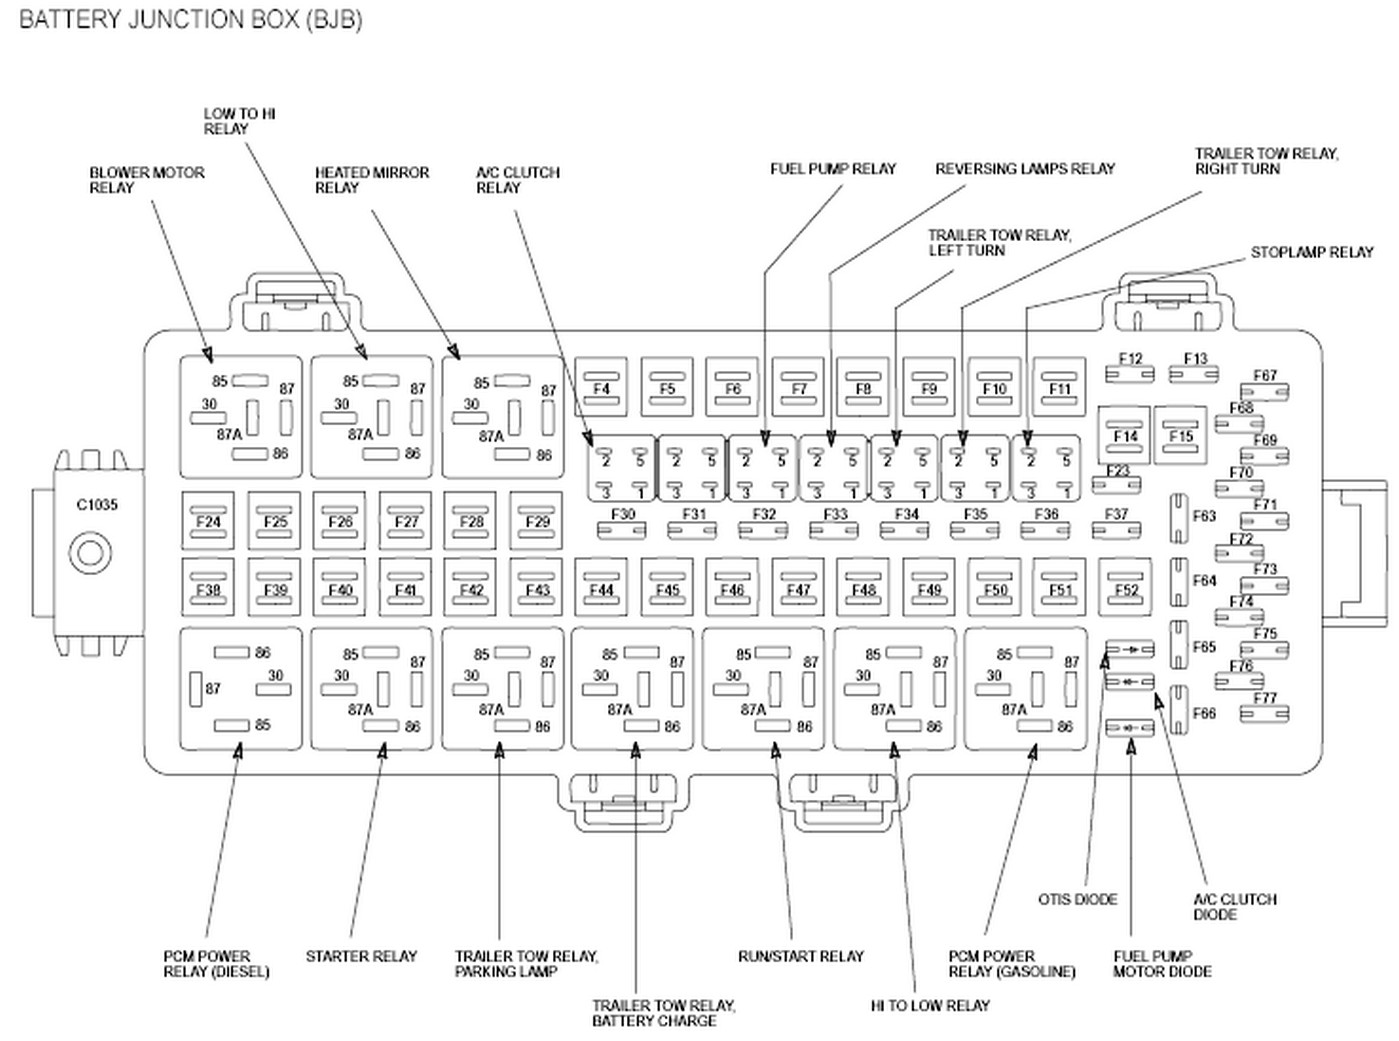 2011 ford f250 fuse box diagram Zoinyhu 2012 f250 fuse box location 2009 ford fusion fuse box diagram 1997 f350 fuse box diagram under the hood at aneh.co